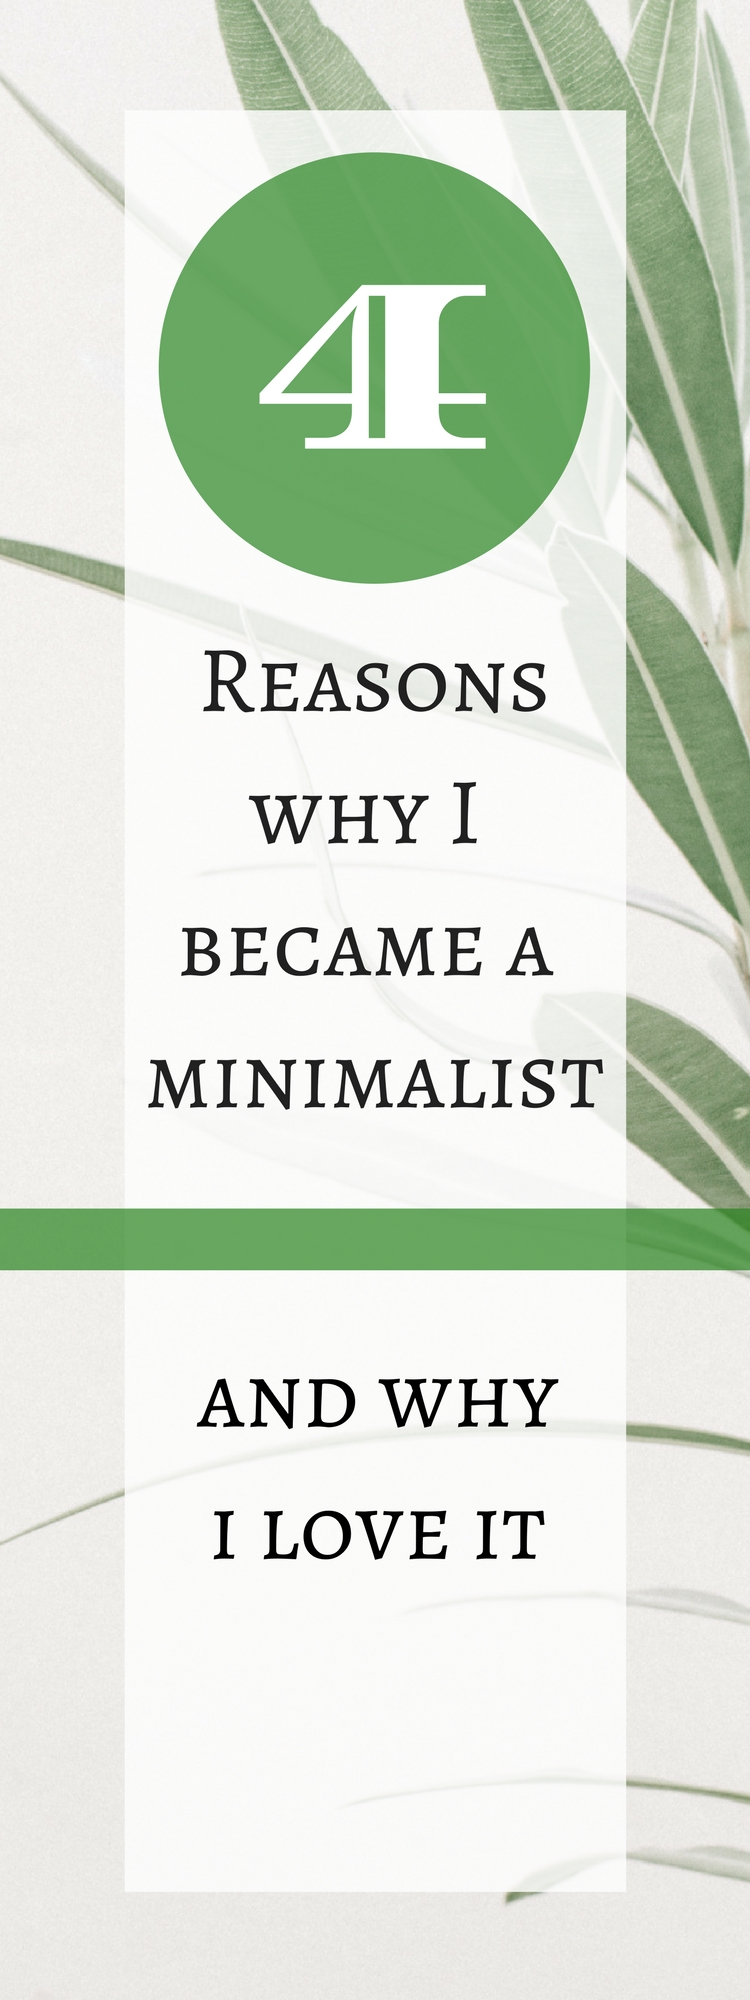 4 reasons why I became a minimalist